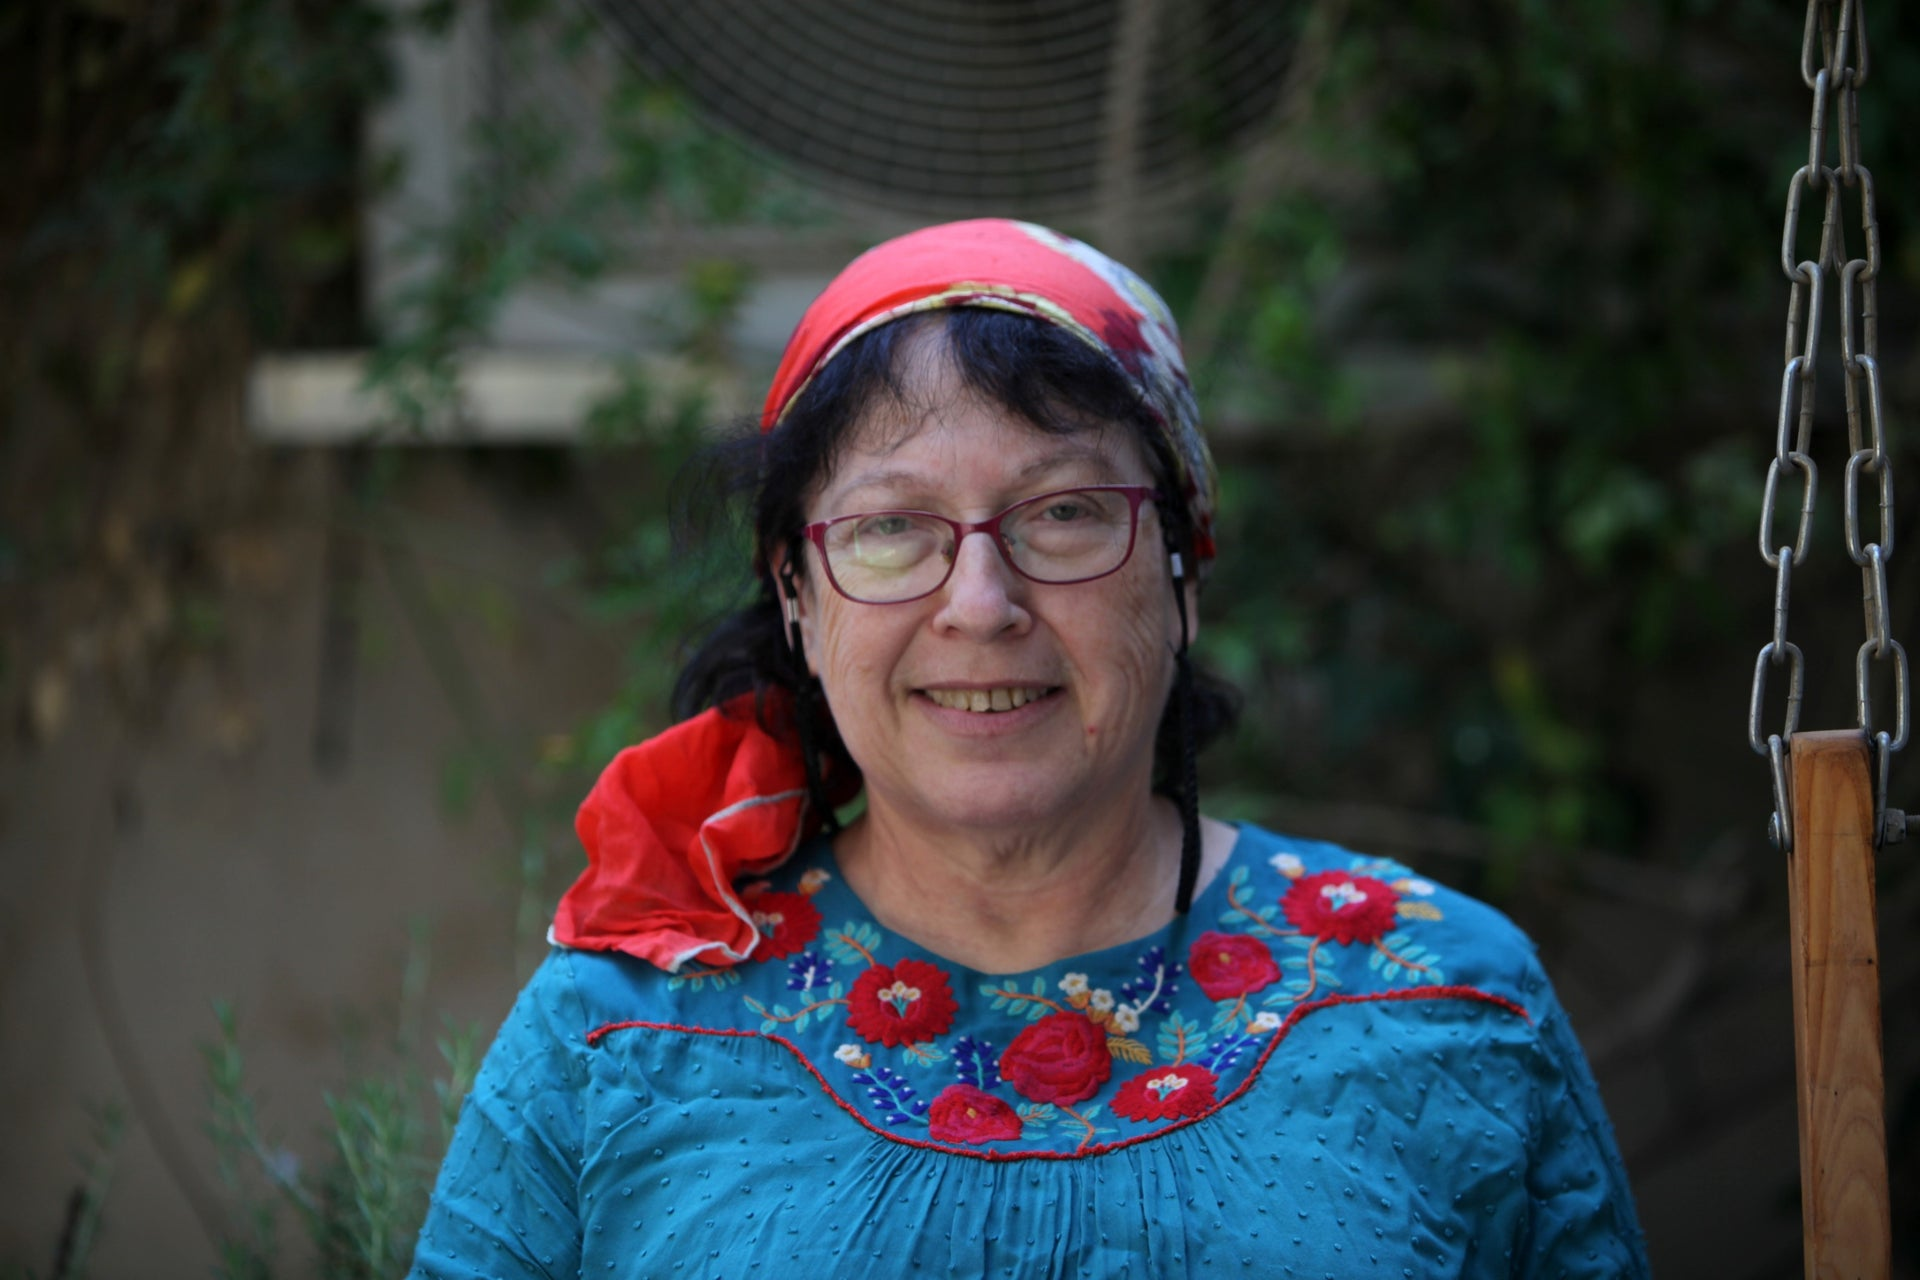 Leah Shakdiel. The mayor has been particularly skillful at getting all the little communities in Yeruham to understand they have common cause against the coronavirus, she says.